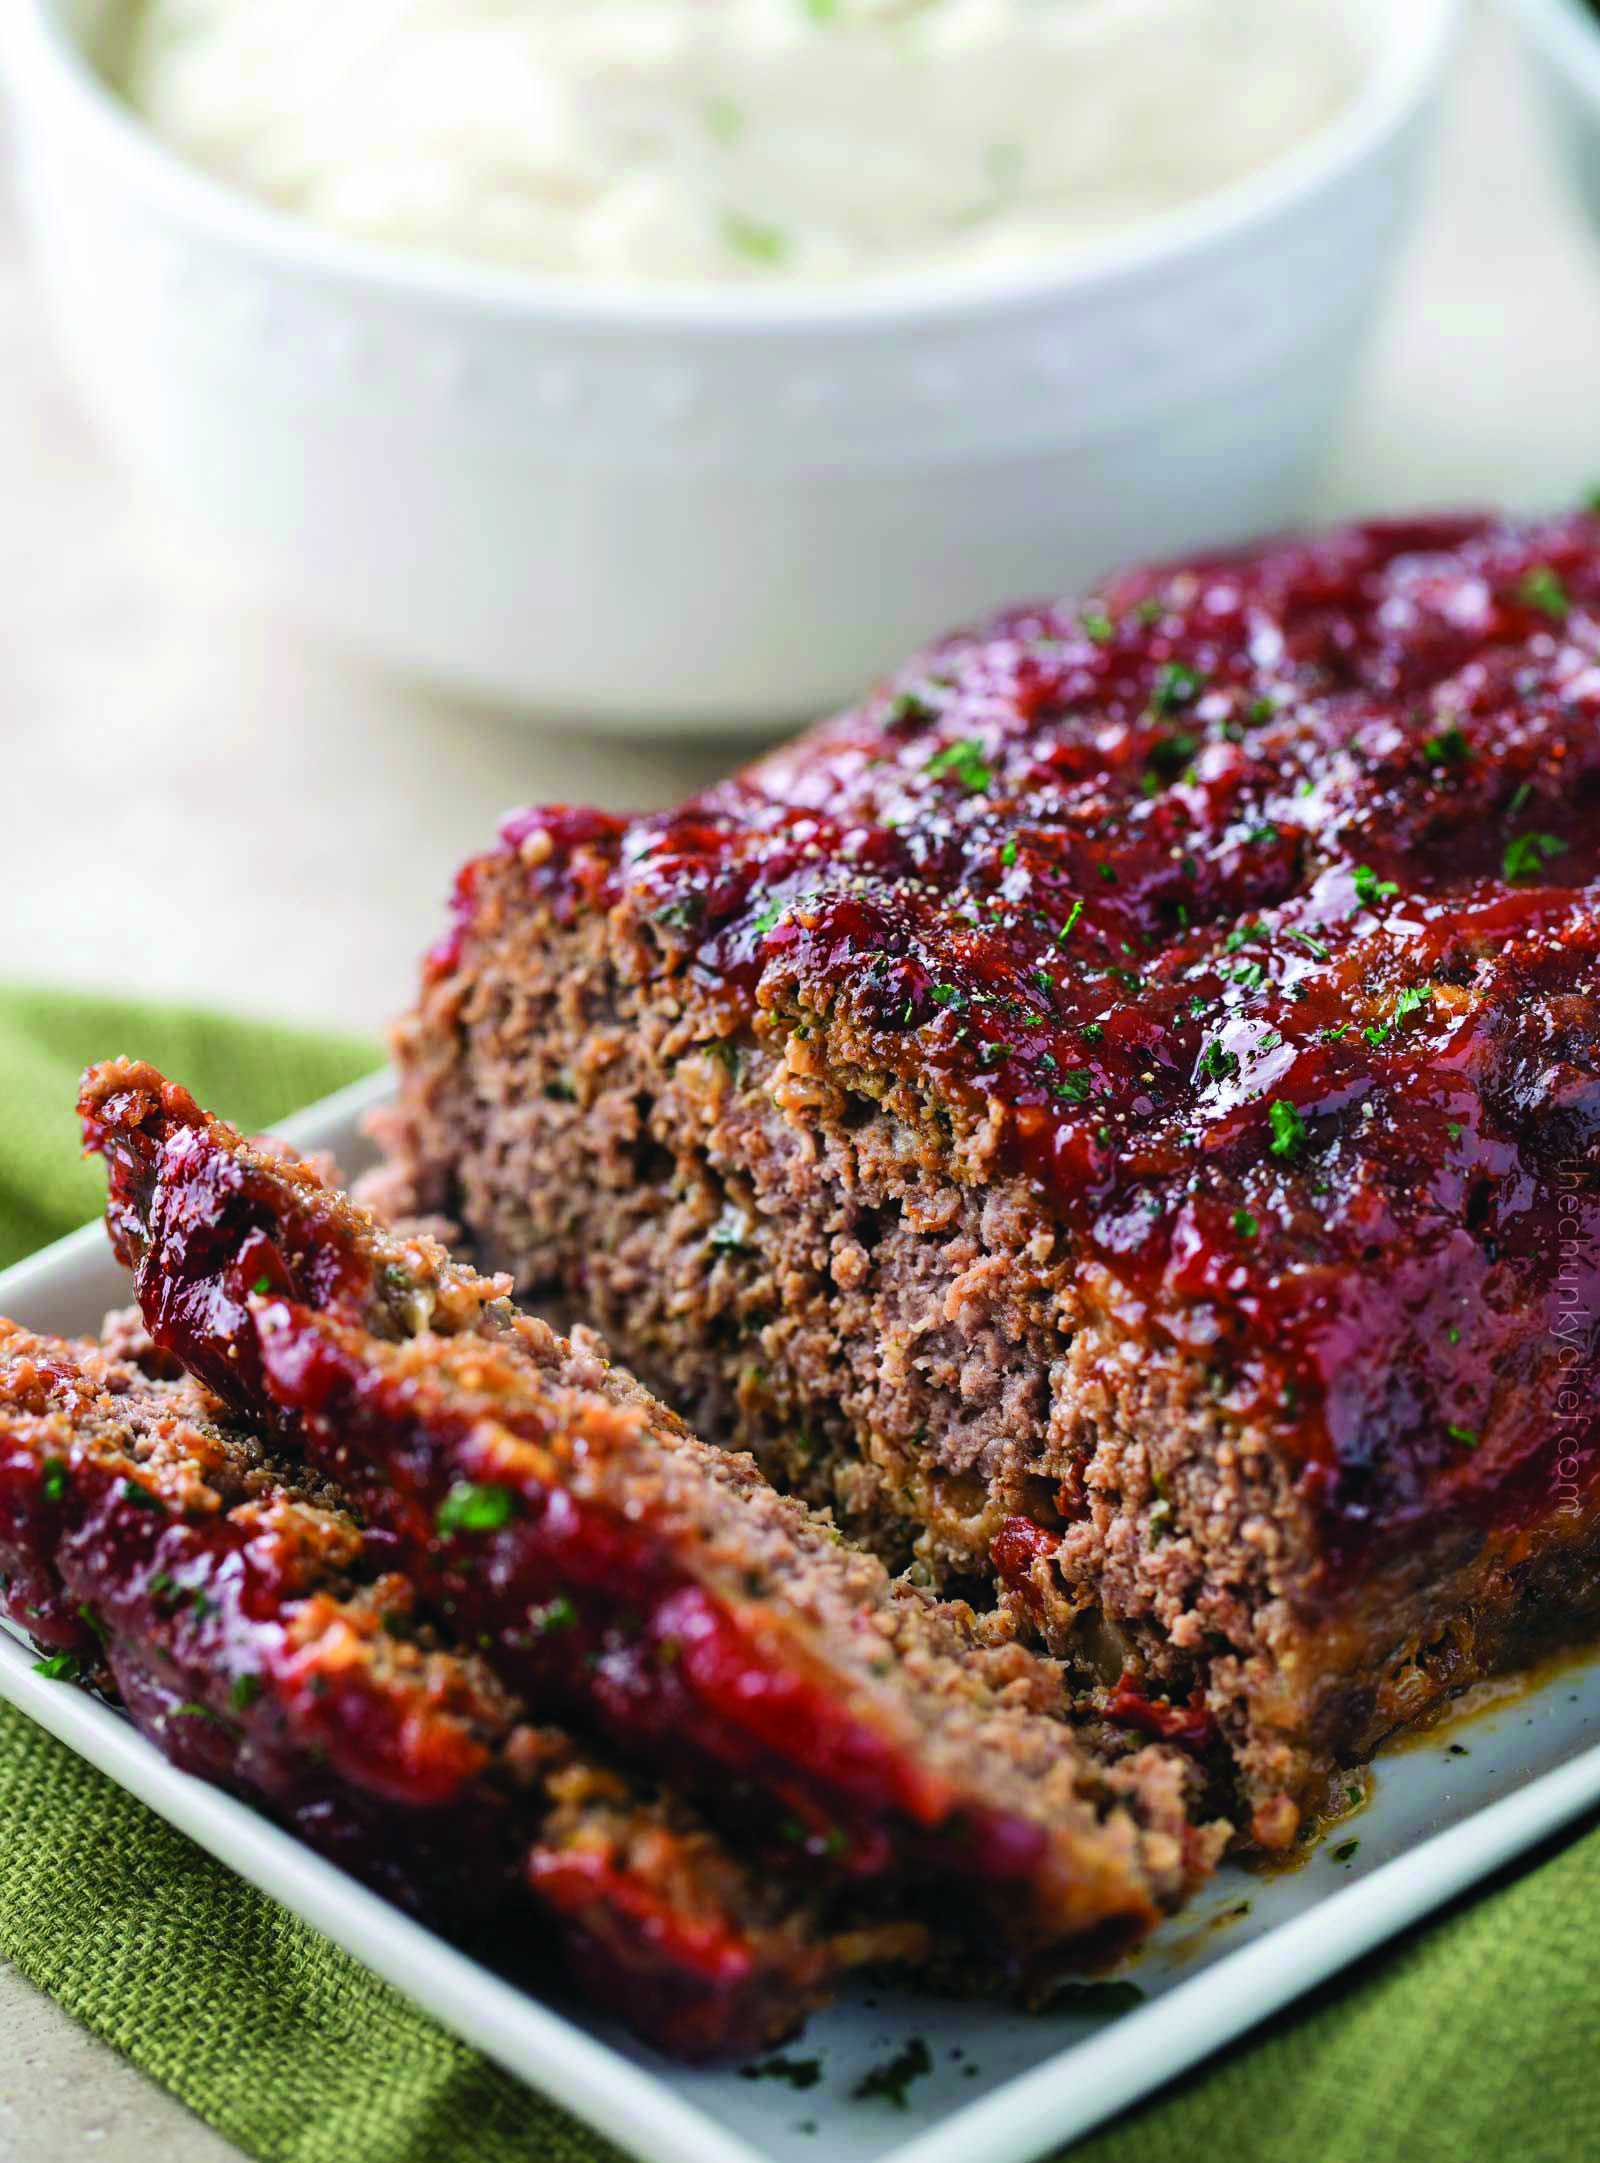 Best 2 Lb Meatloaf Recipes - Doing my best for Him: Vegetable and Turkey Meatloaf Recipe - It's ...